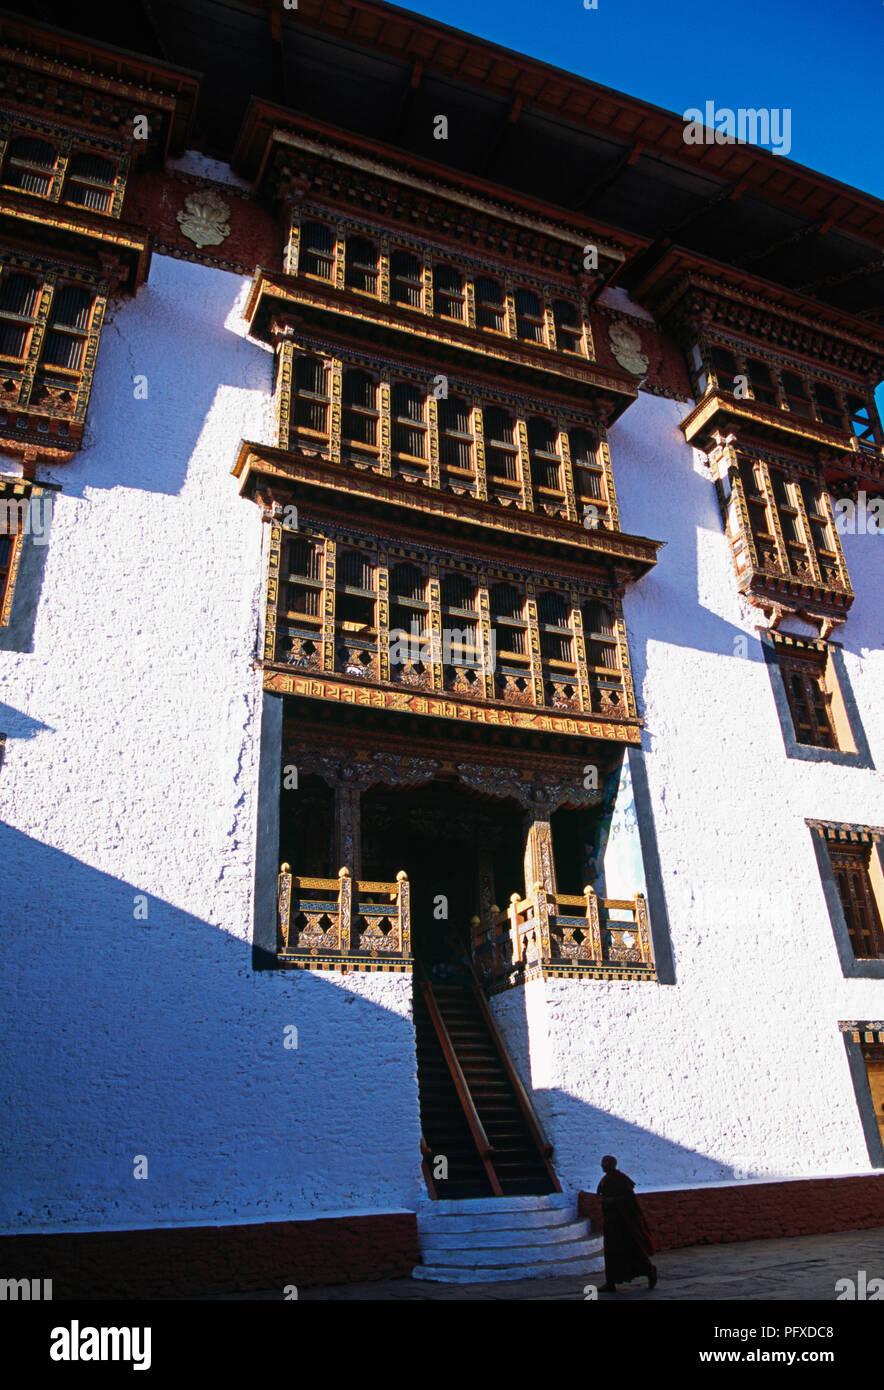 Interior courtyard of Punakha Dzong in Punakha, Bhutan - Stock Image